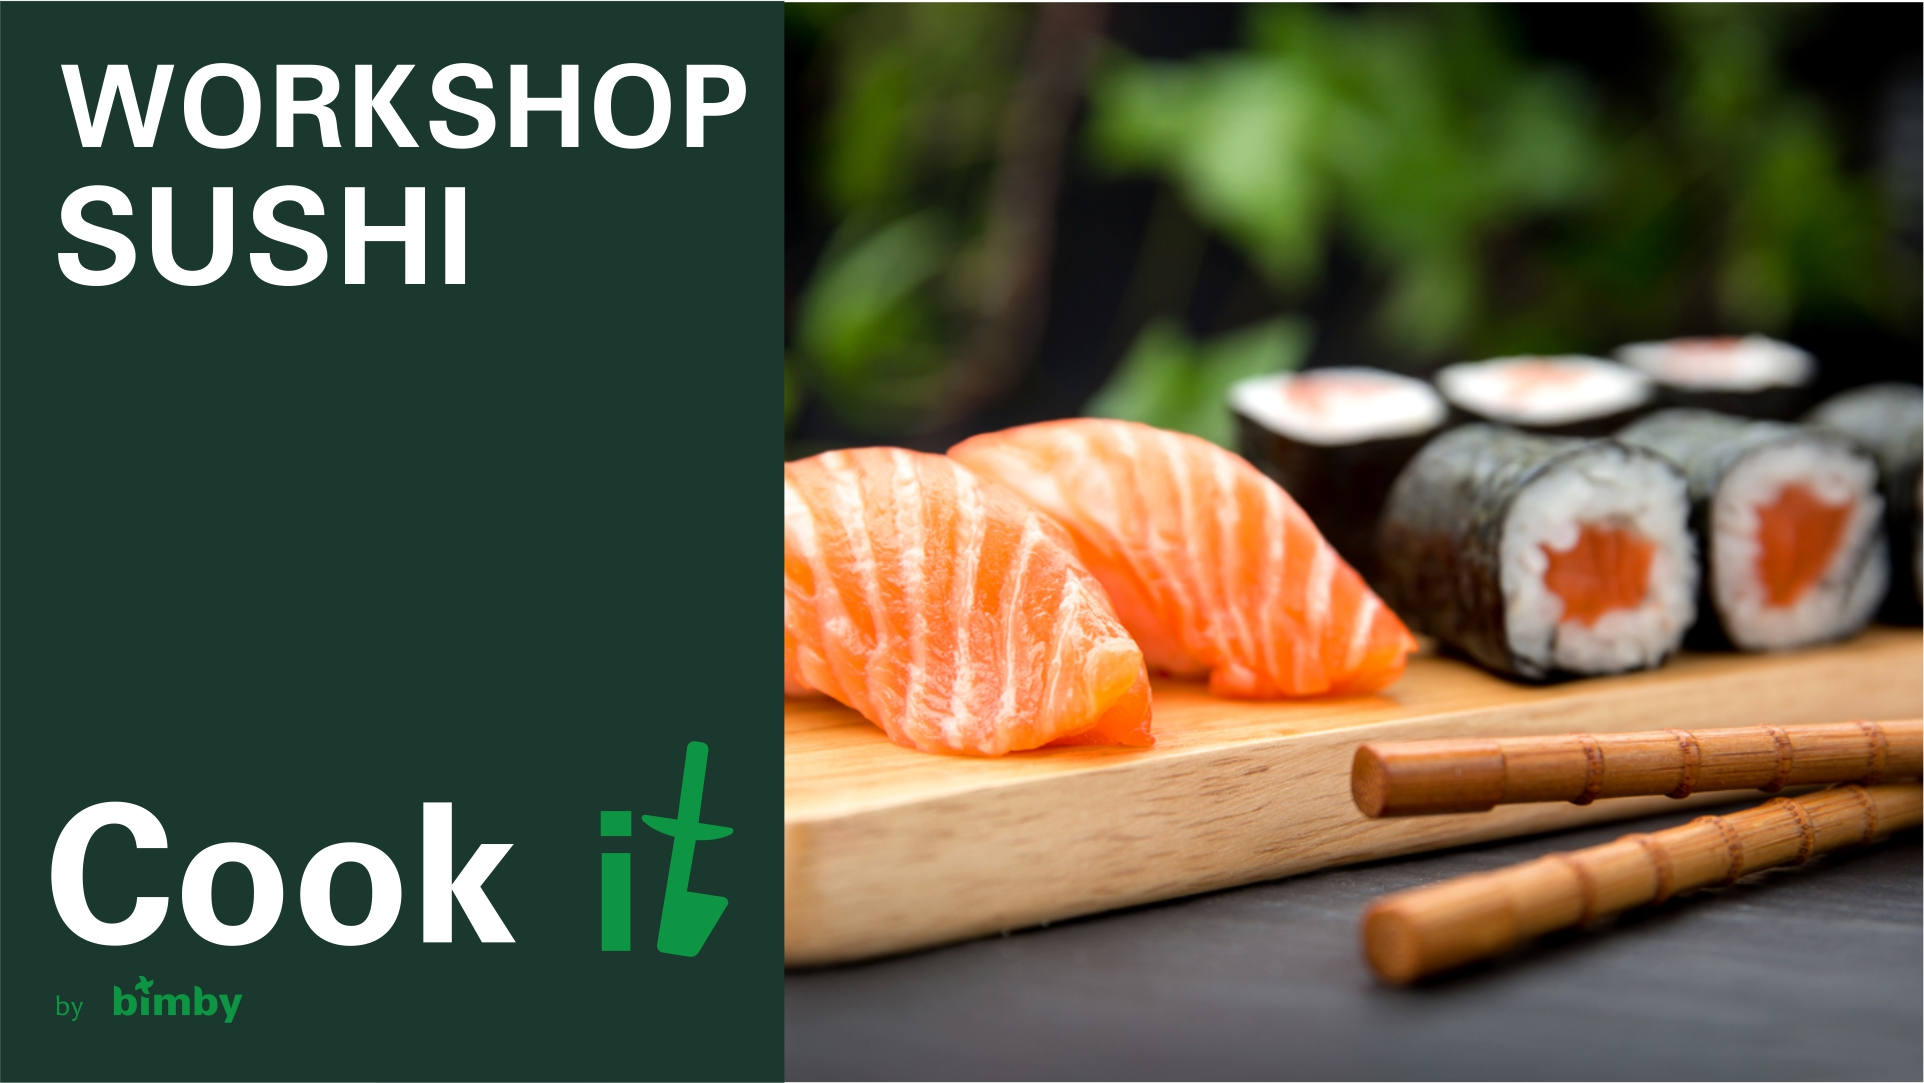 Workshop Cook it by Bimby® | Sushi